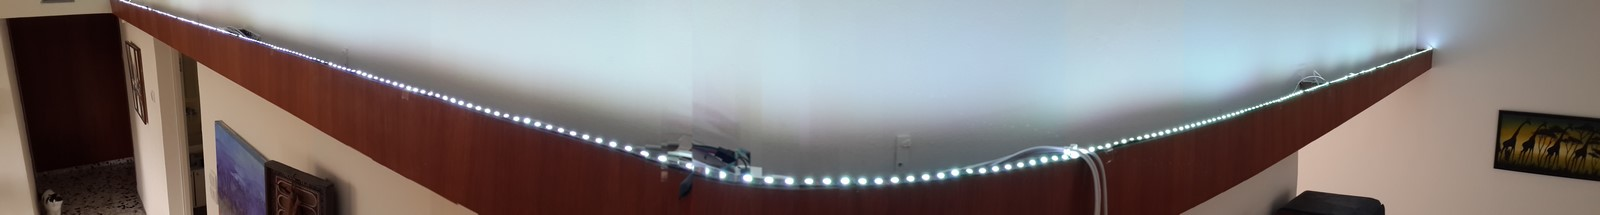 Led strip panorama picture